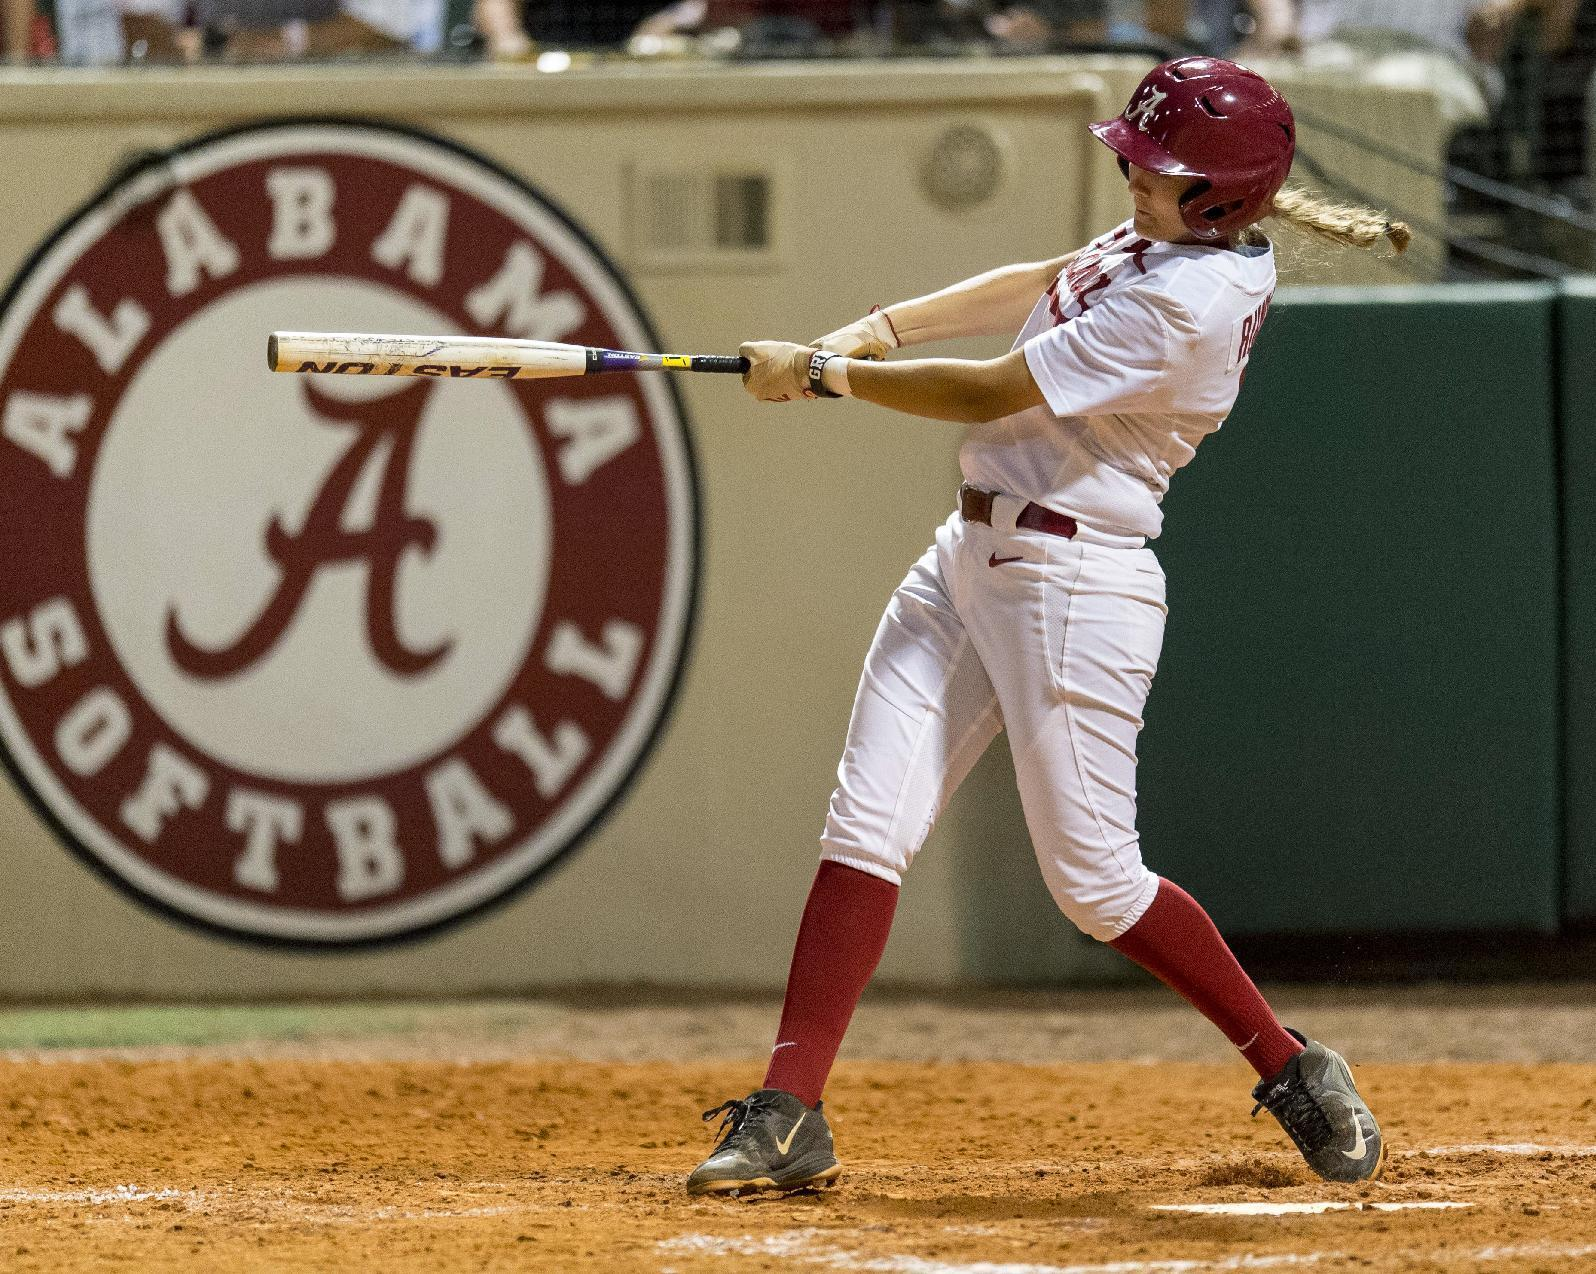 Record-setting scoring changes face of college softball